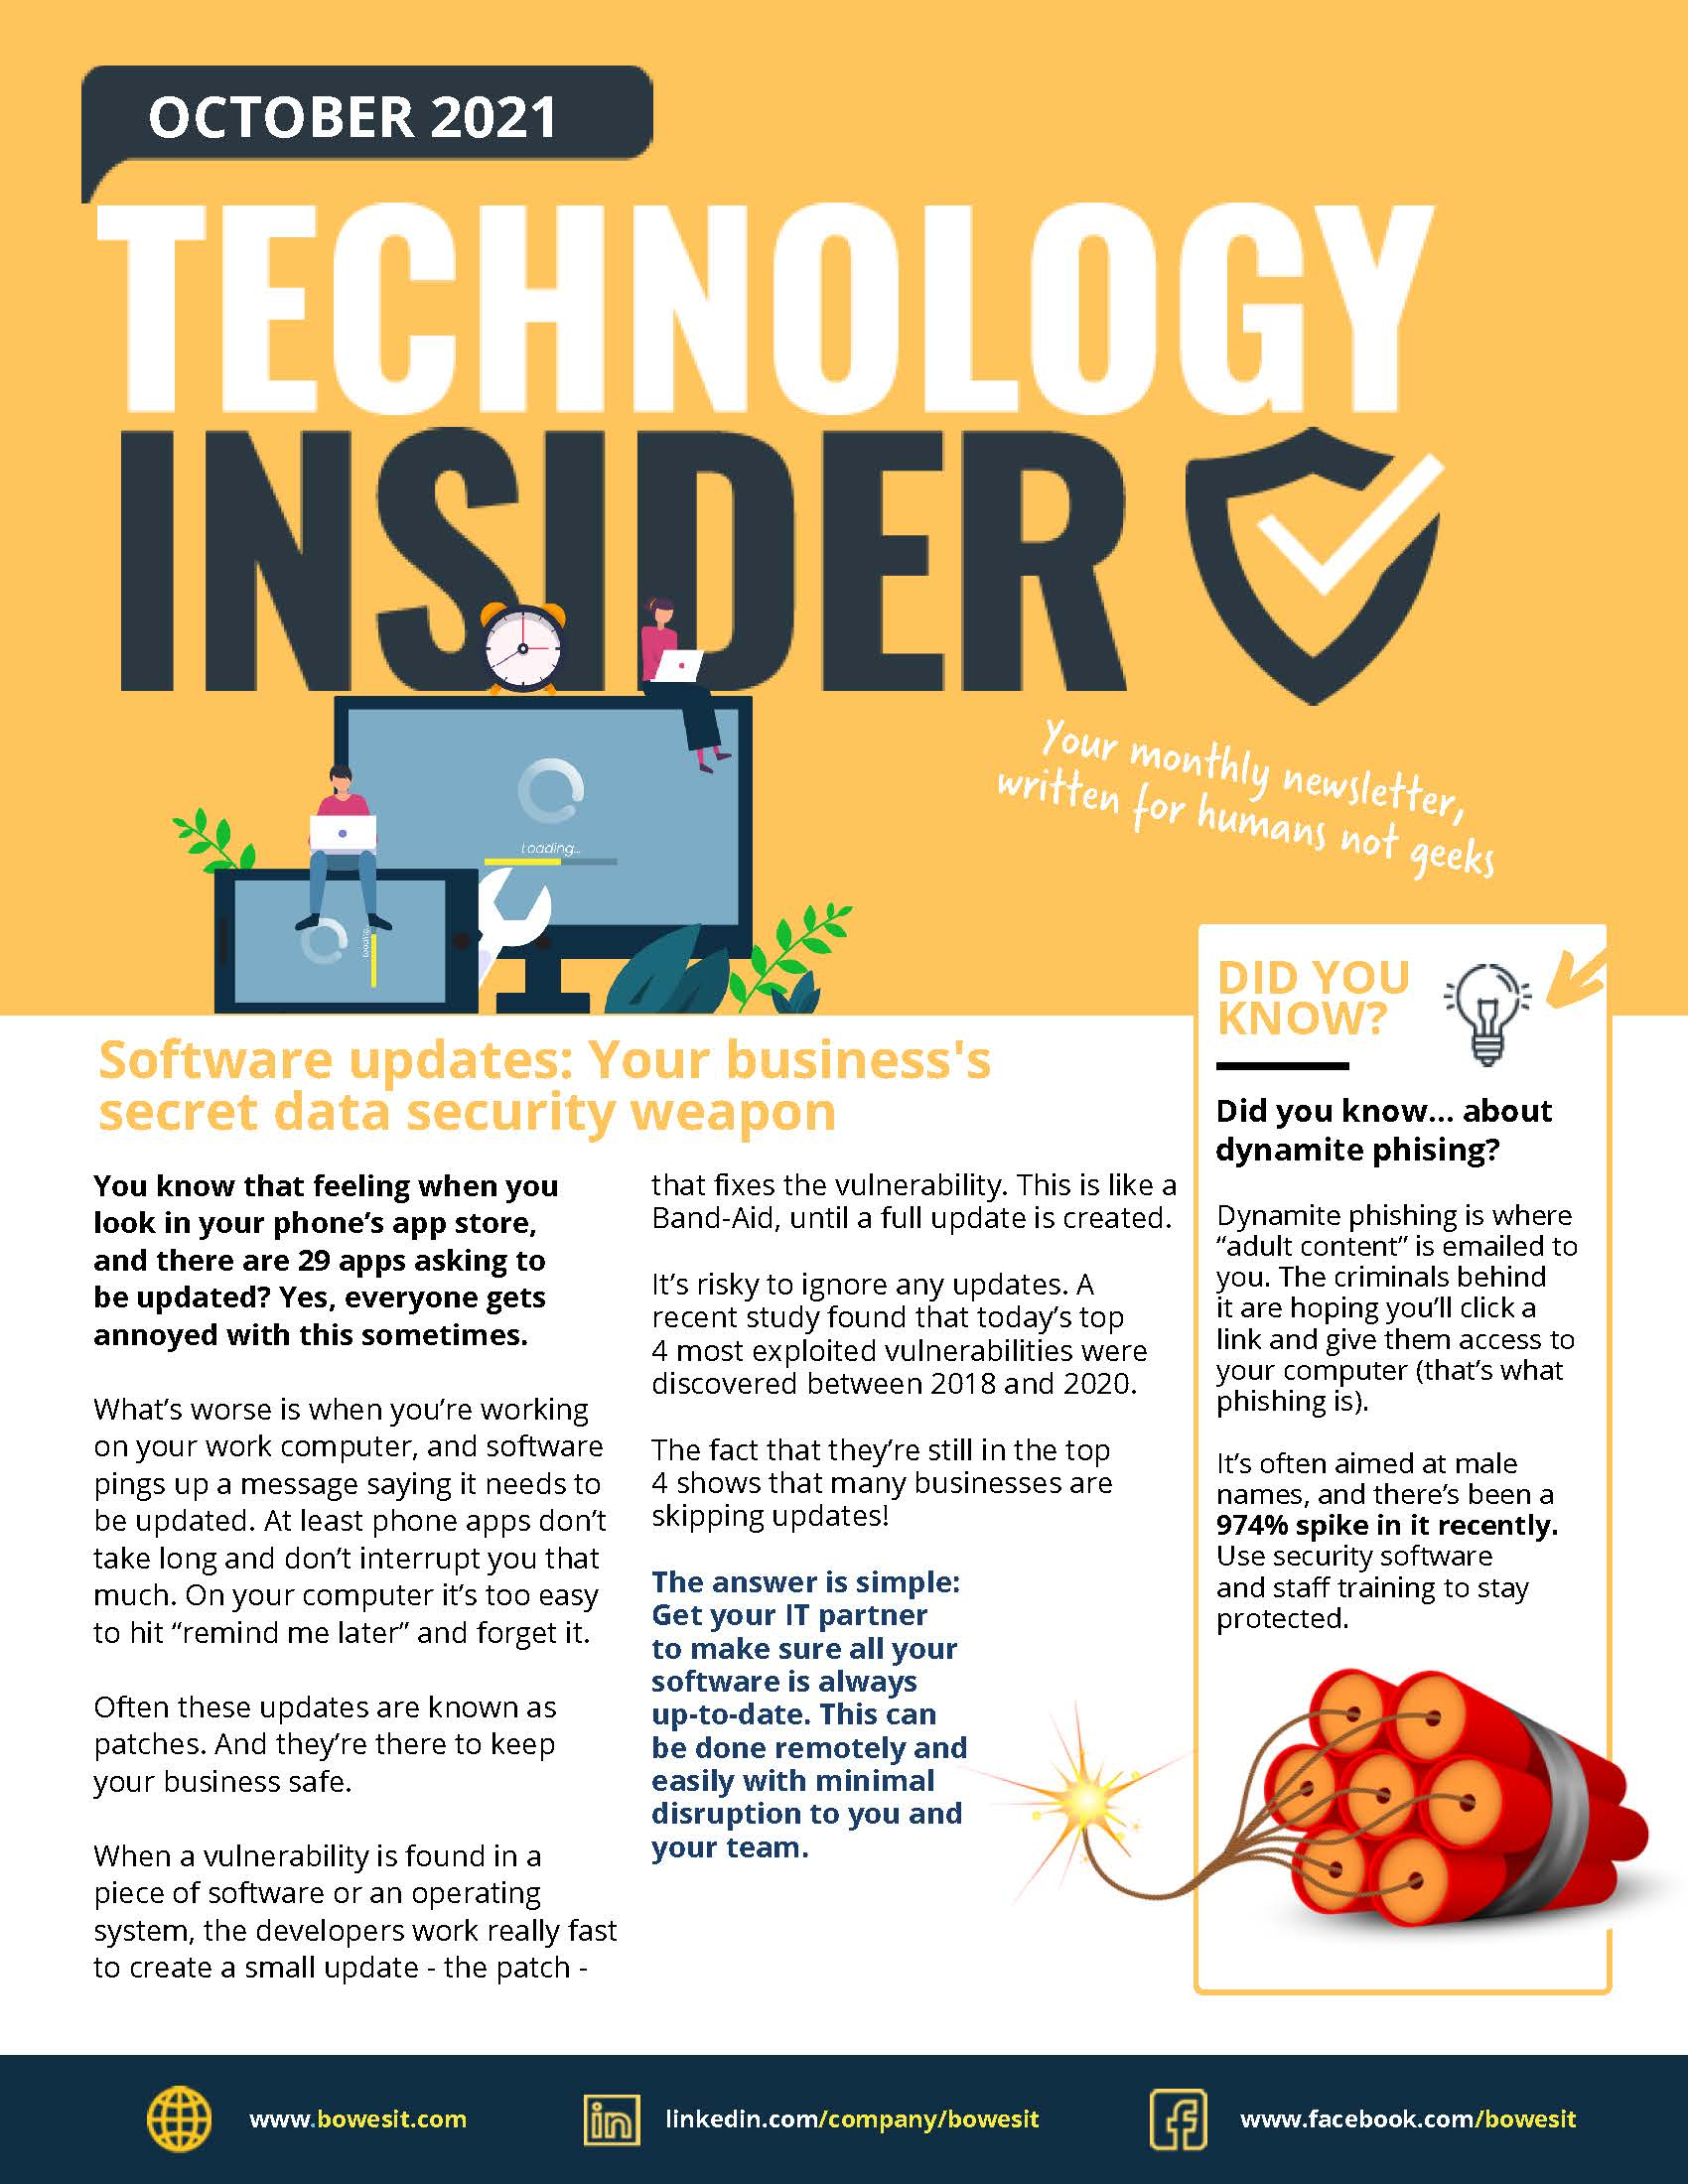 Bowes IT Niagara IT Support Oct 2021 Technology Insider